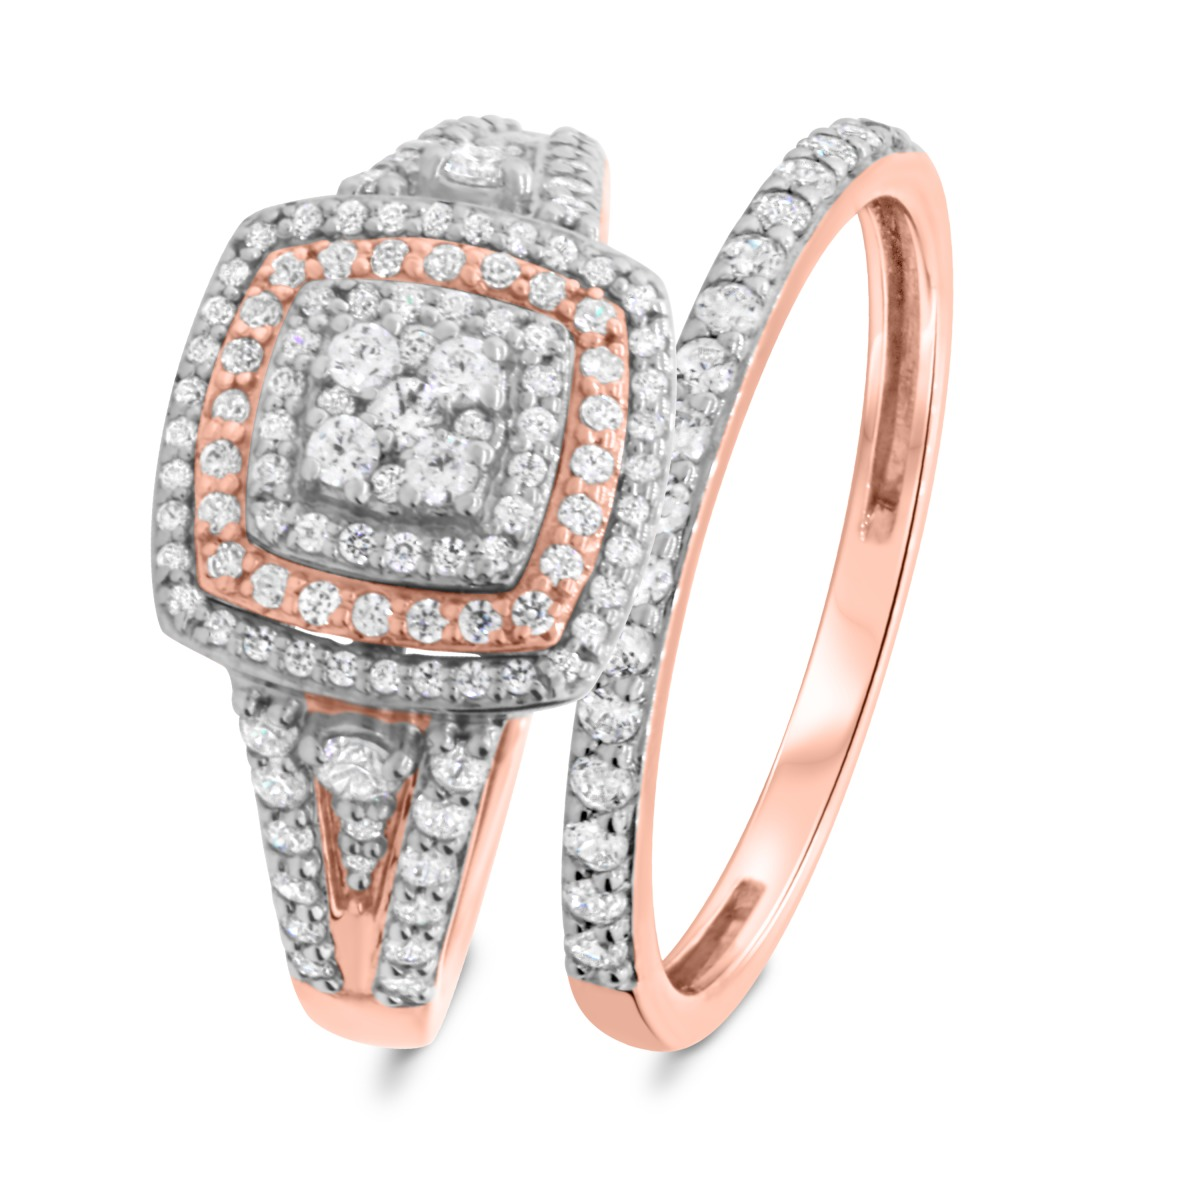 1 CT. T.W. Diamond Matching Bridal Ring Set 14K Rose Gold